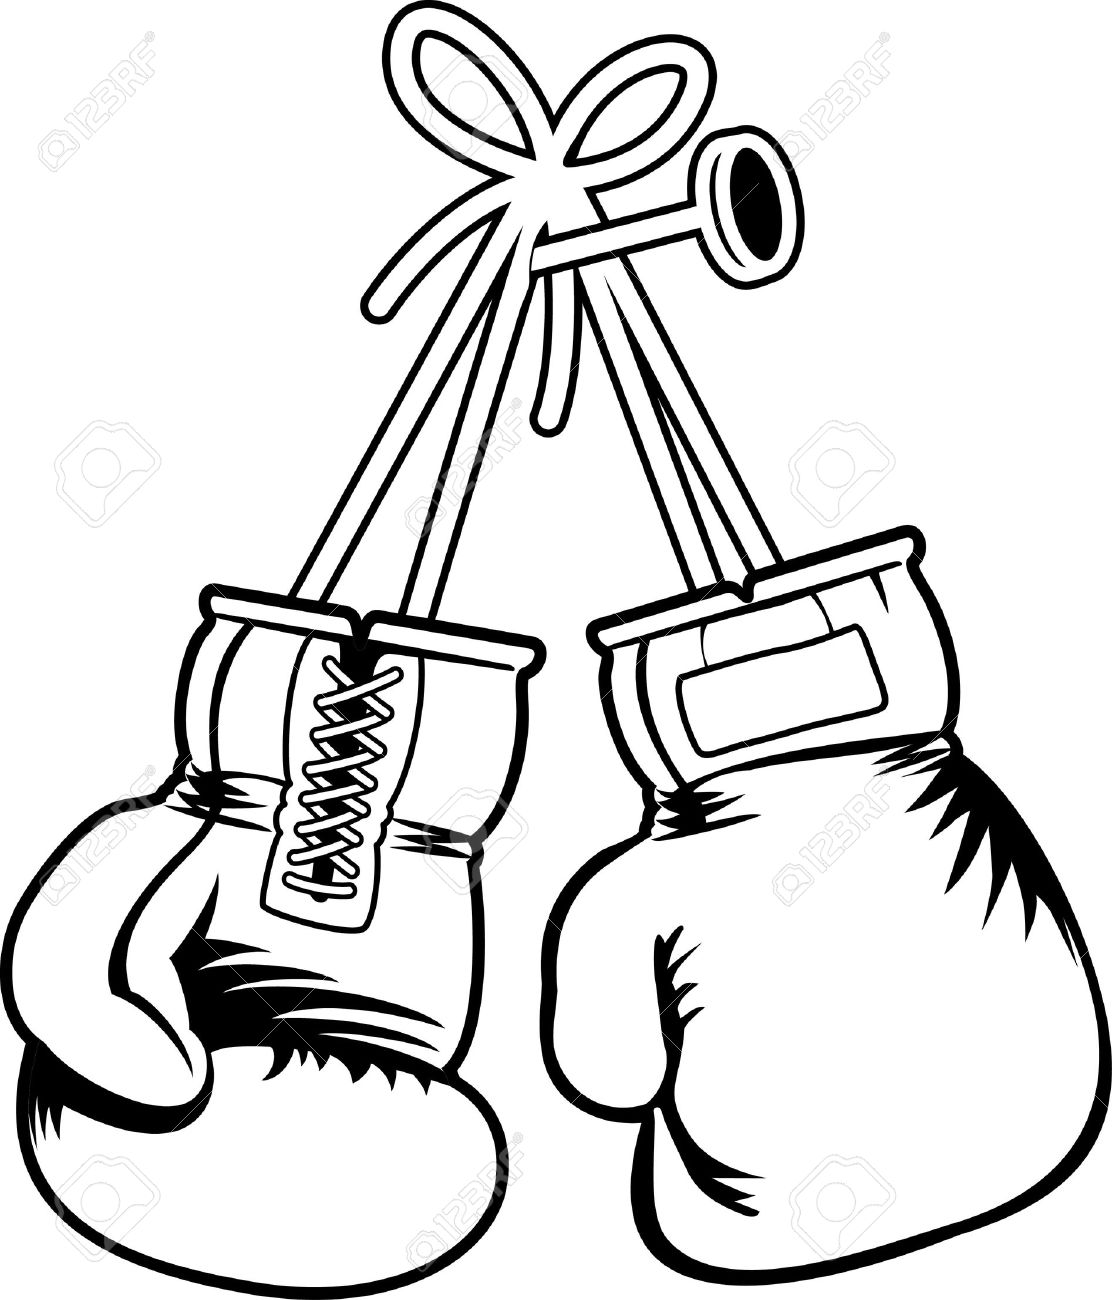 1112x1300 Boxer Clipart Kickboxing Glove